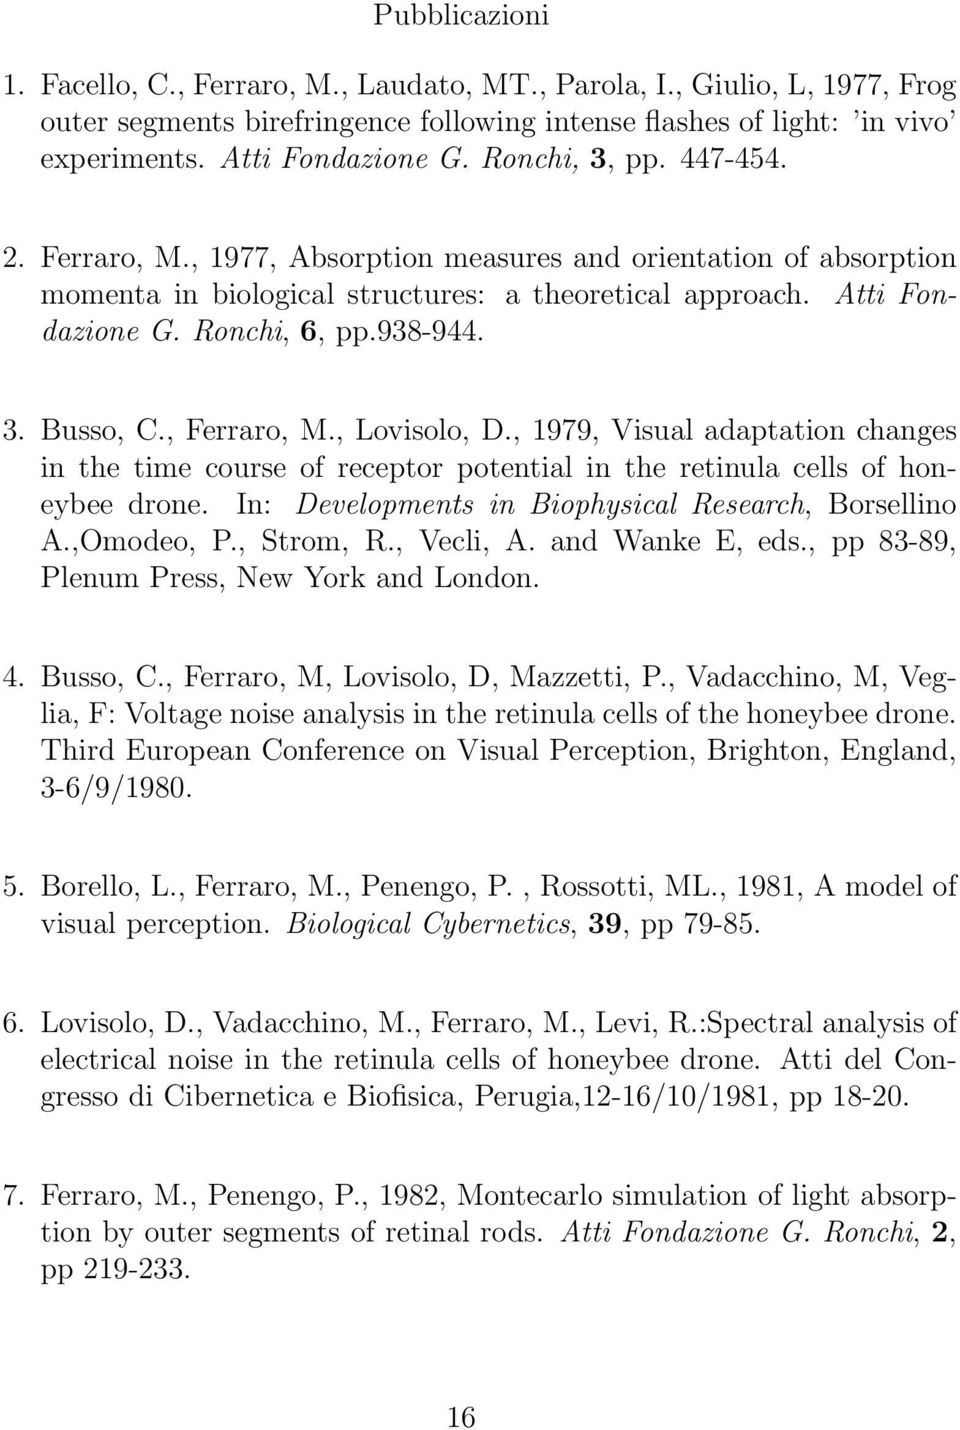 , Ferraro, M., Lovisolo, D., 1979, Visual adaptation changes in the time course of receptor potential in the retinula cells of honeybee drone. In: Developments in Biophysical Research, Borsellino A.